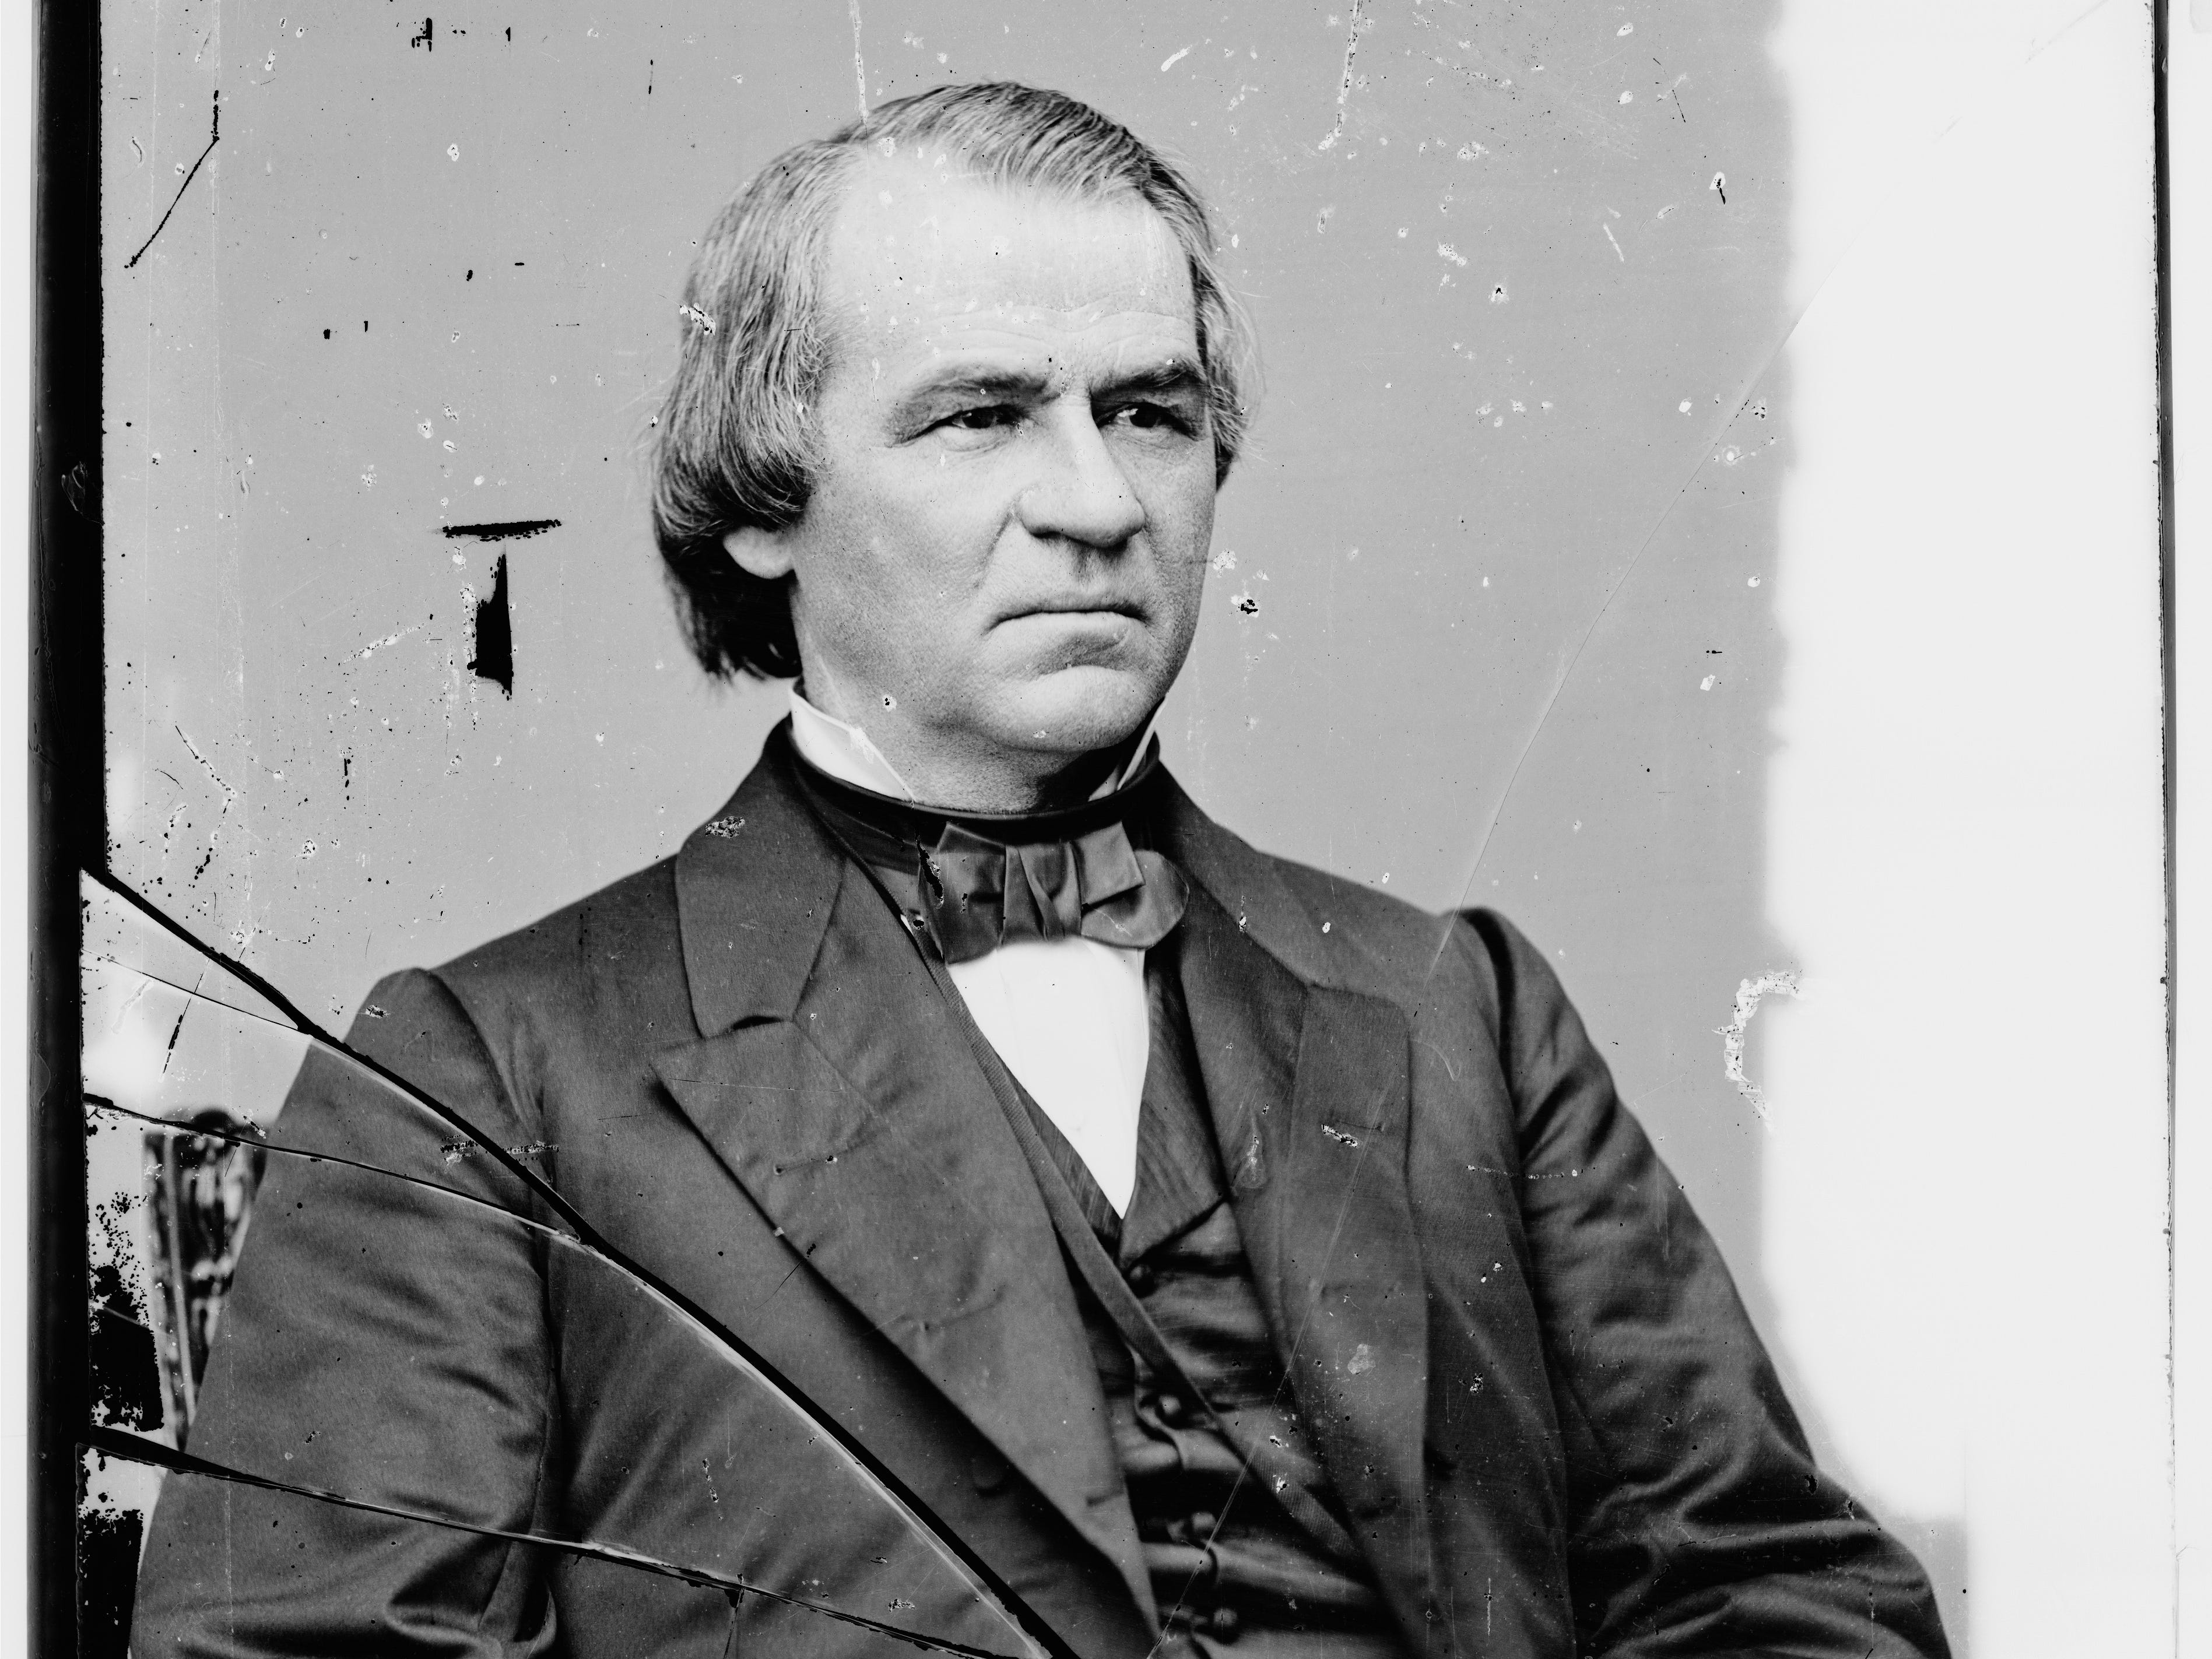 Andrew Johnson, 1808 -1875, 17th President of the United States.